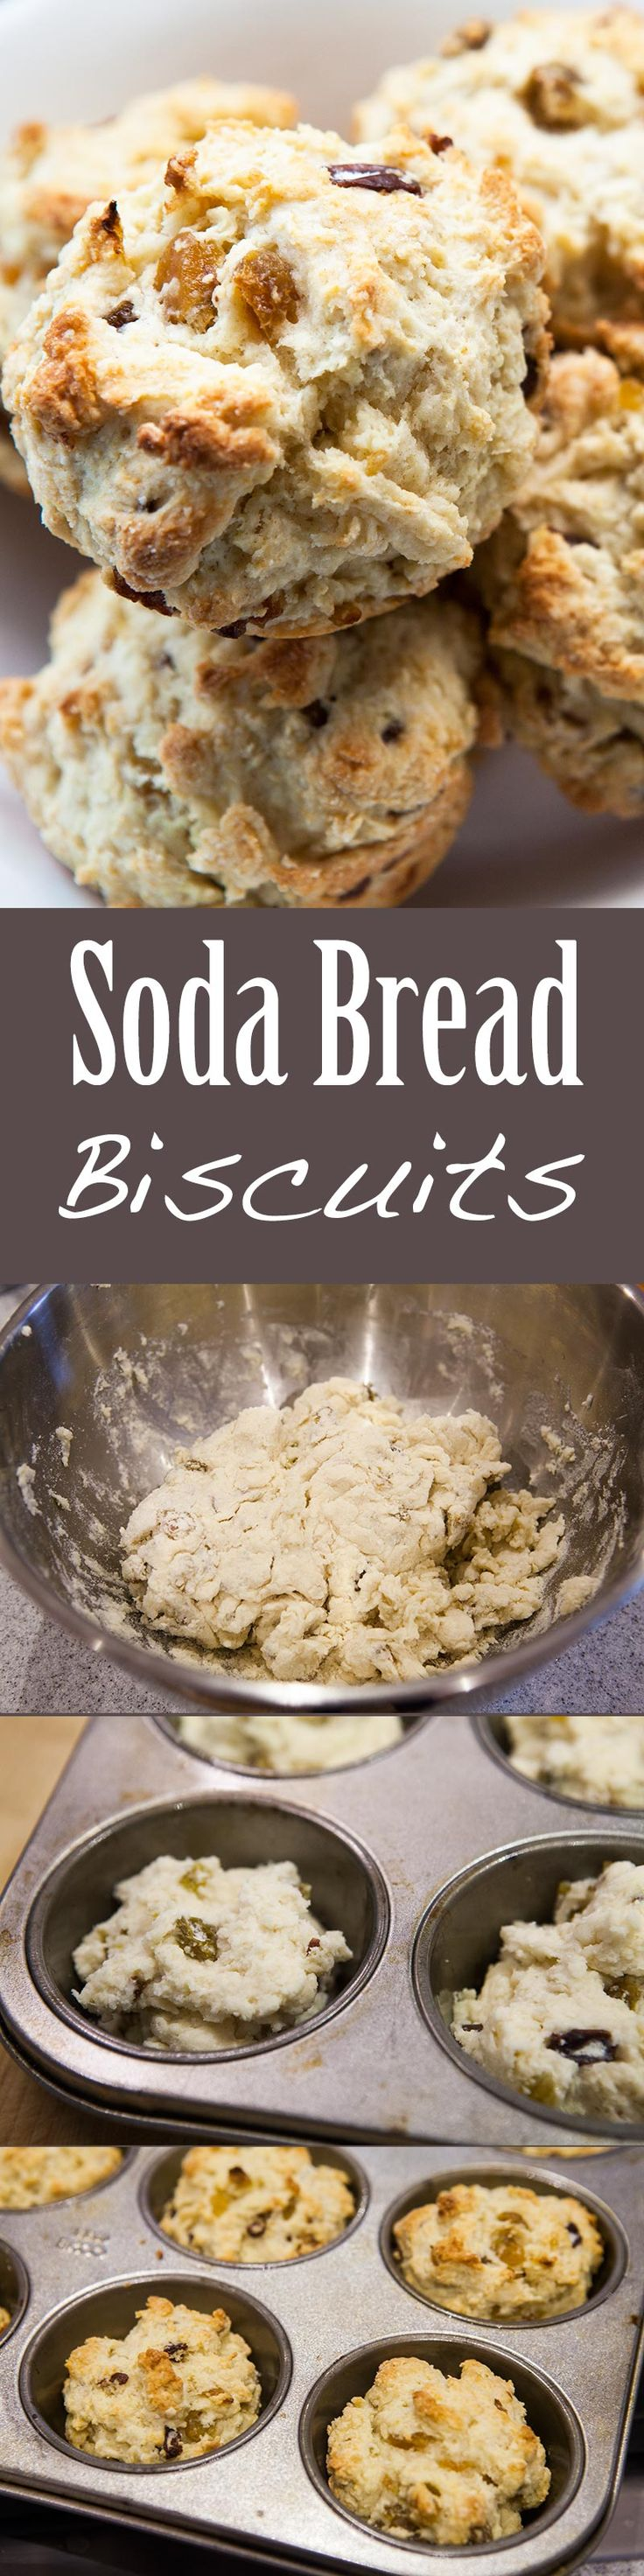 Soda Bread Biscuits! Like mini Irish soda breads, these biscuits are made with flour, baking soda, sugar, butter, and buttermilk. Add-ins like raisins and caraway seeds optional. Fun idea for St. Patrick's Day! On SimplyRecipes.com